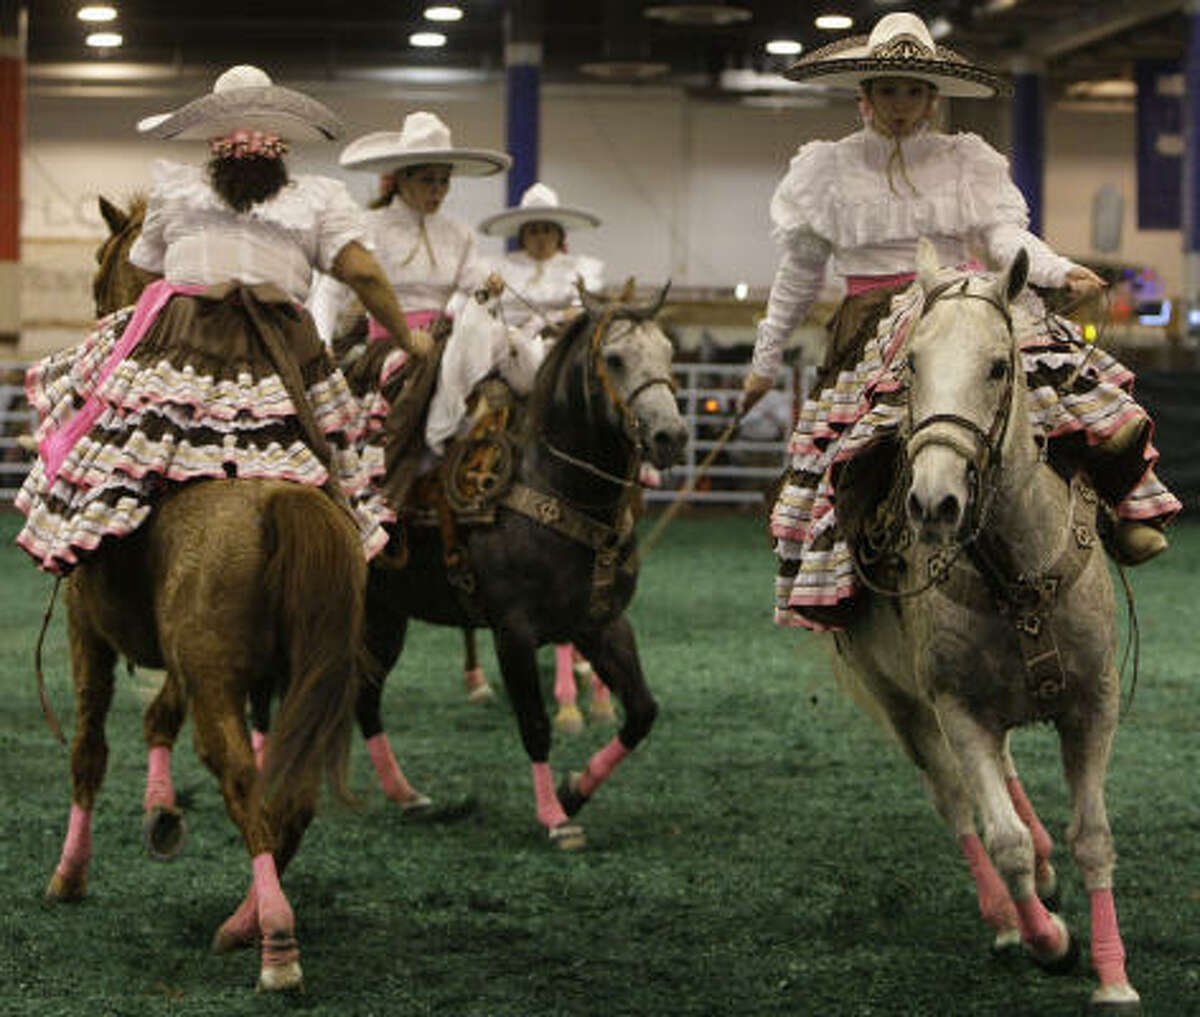 Las Christares, a female sidesaddle horse drill team from Houston, practice for their next performance at the Fiesta Charra in Reliant Center on Go Tejano Day at the Houston Livestock Show and Rodeo on Sunday, March 15, 2009, in Houston.